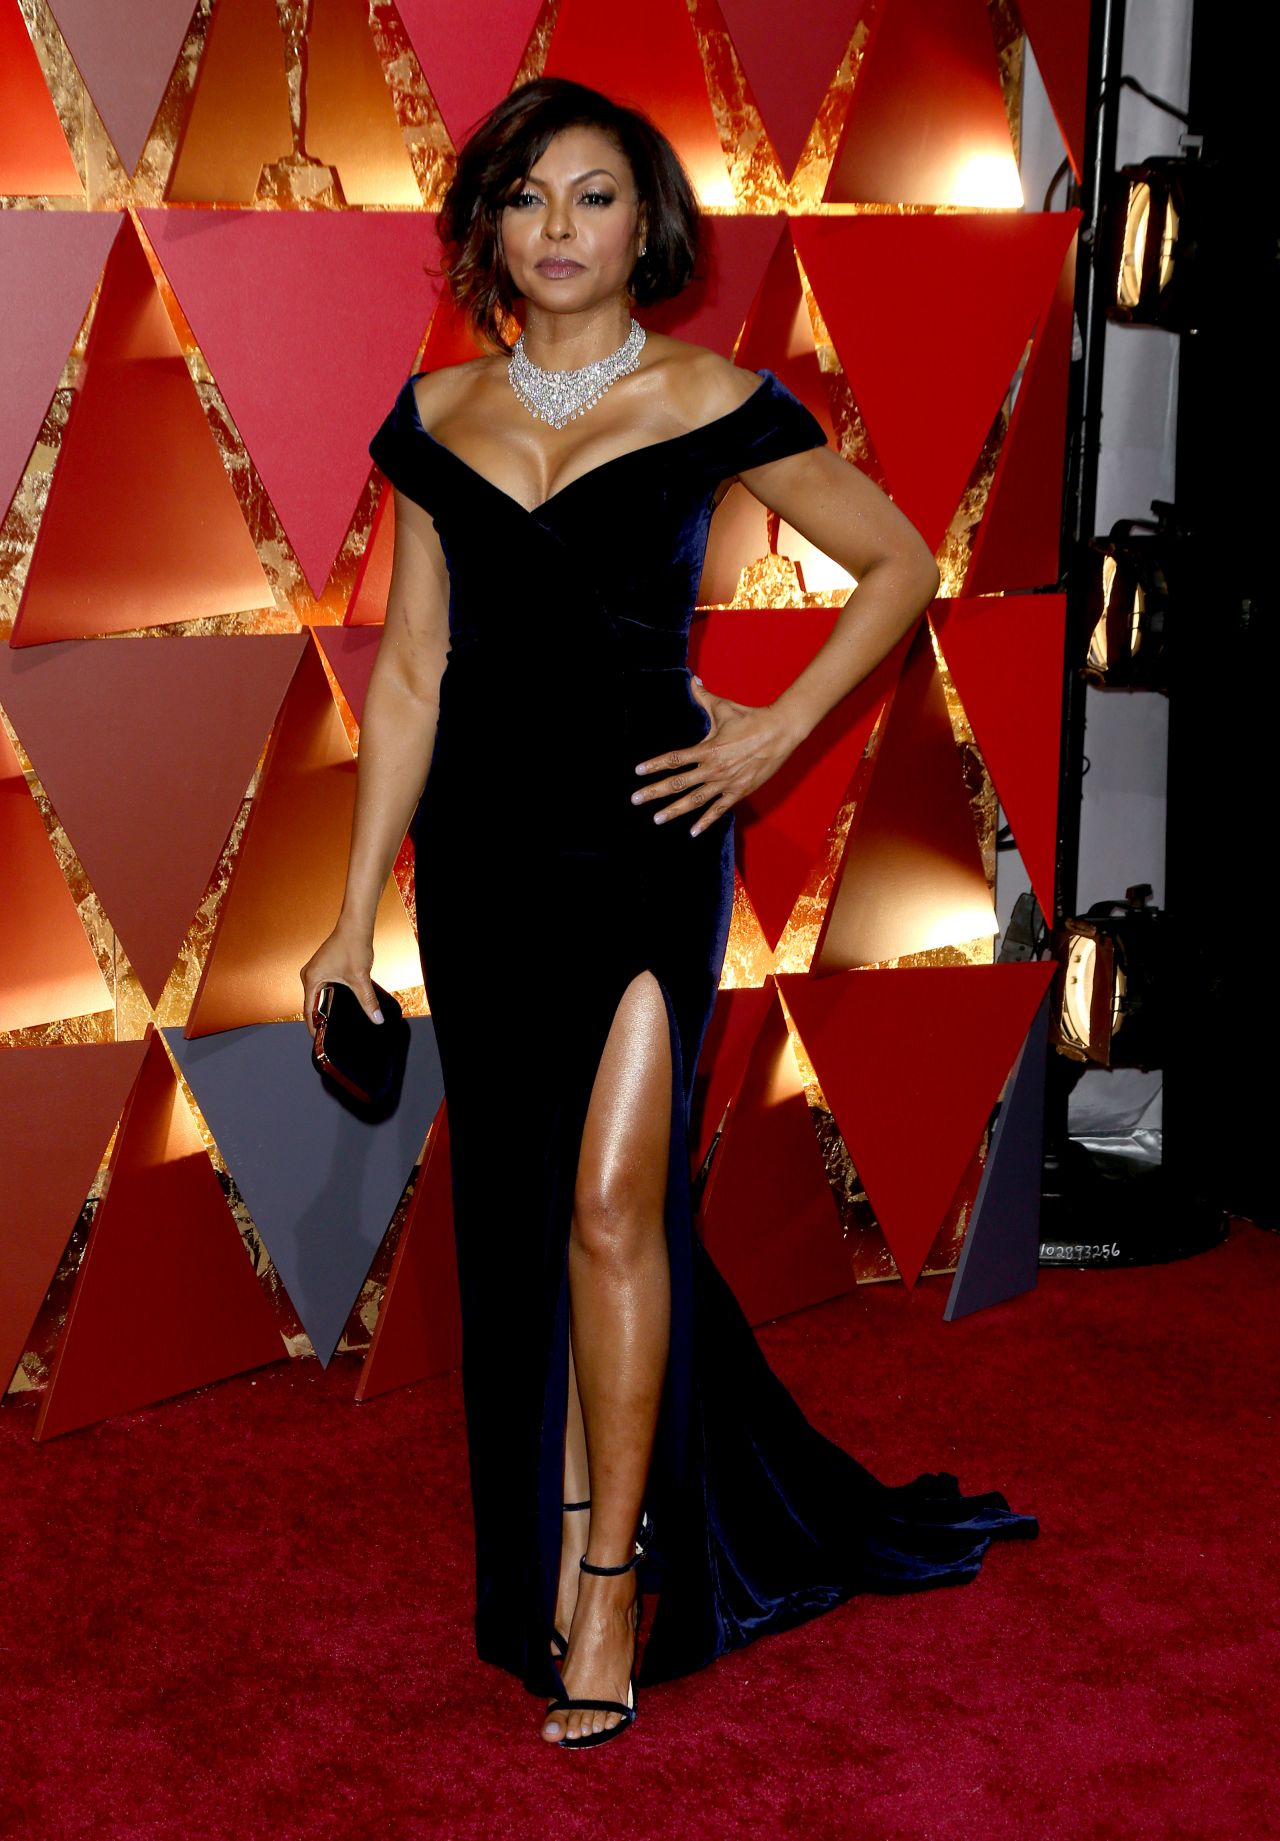 http://celebmafia.com/wp-content/uploads/2017/02/taraji-p.-henson-oscars-2017-red-carpet-in-hollywood-7.jpg